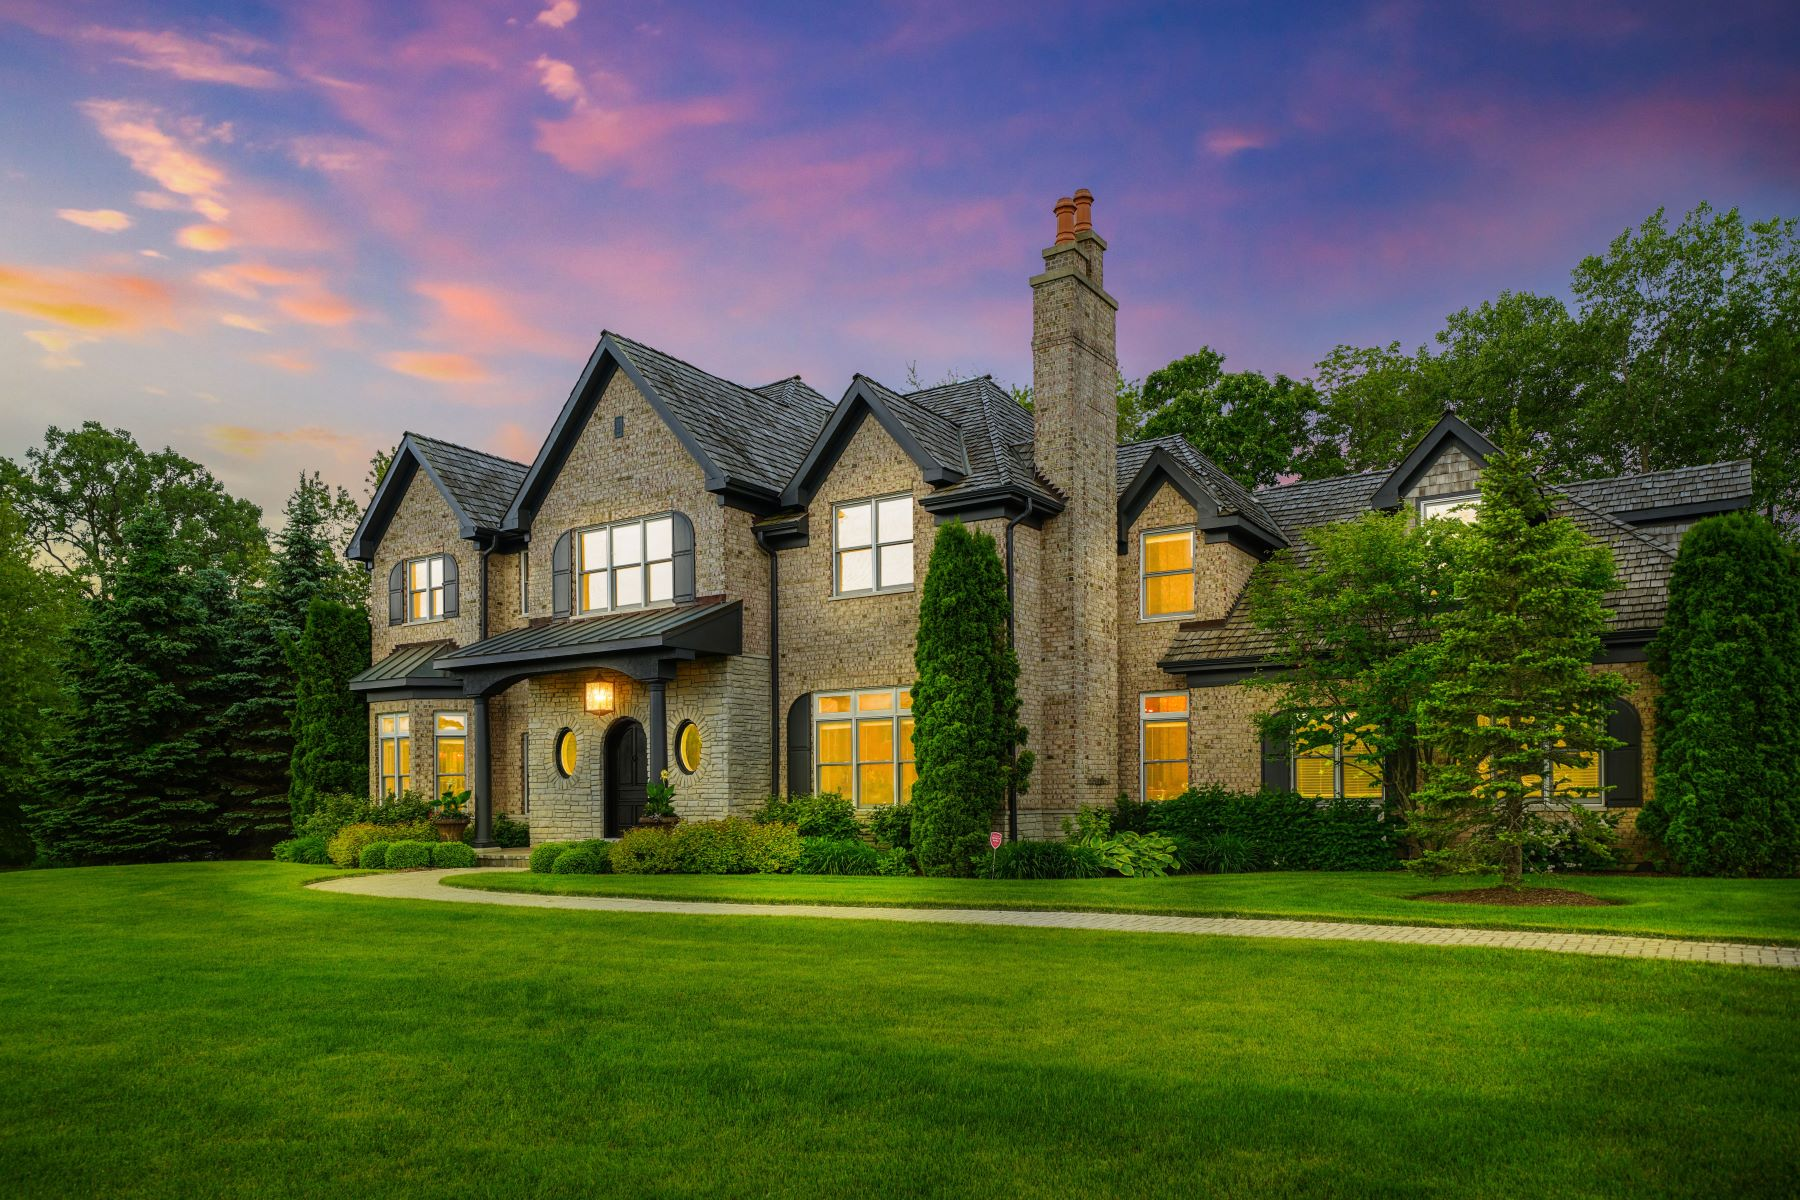 Single Family Homes for Active at Sophisticated Lake Forest Property 950 Gage Lane Lake Forest, Illinois 60045 United States